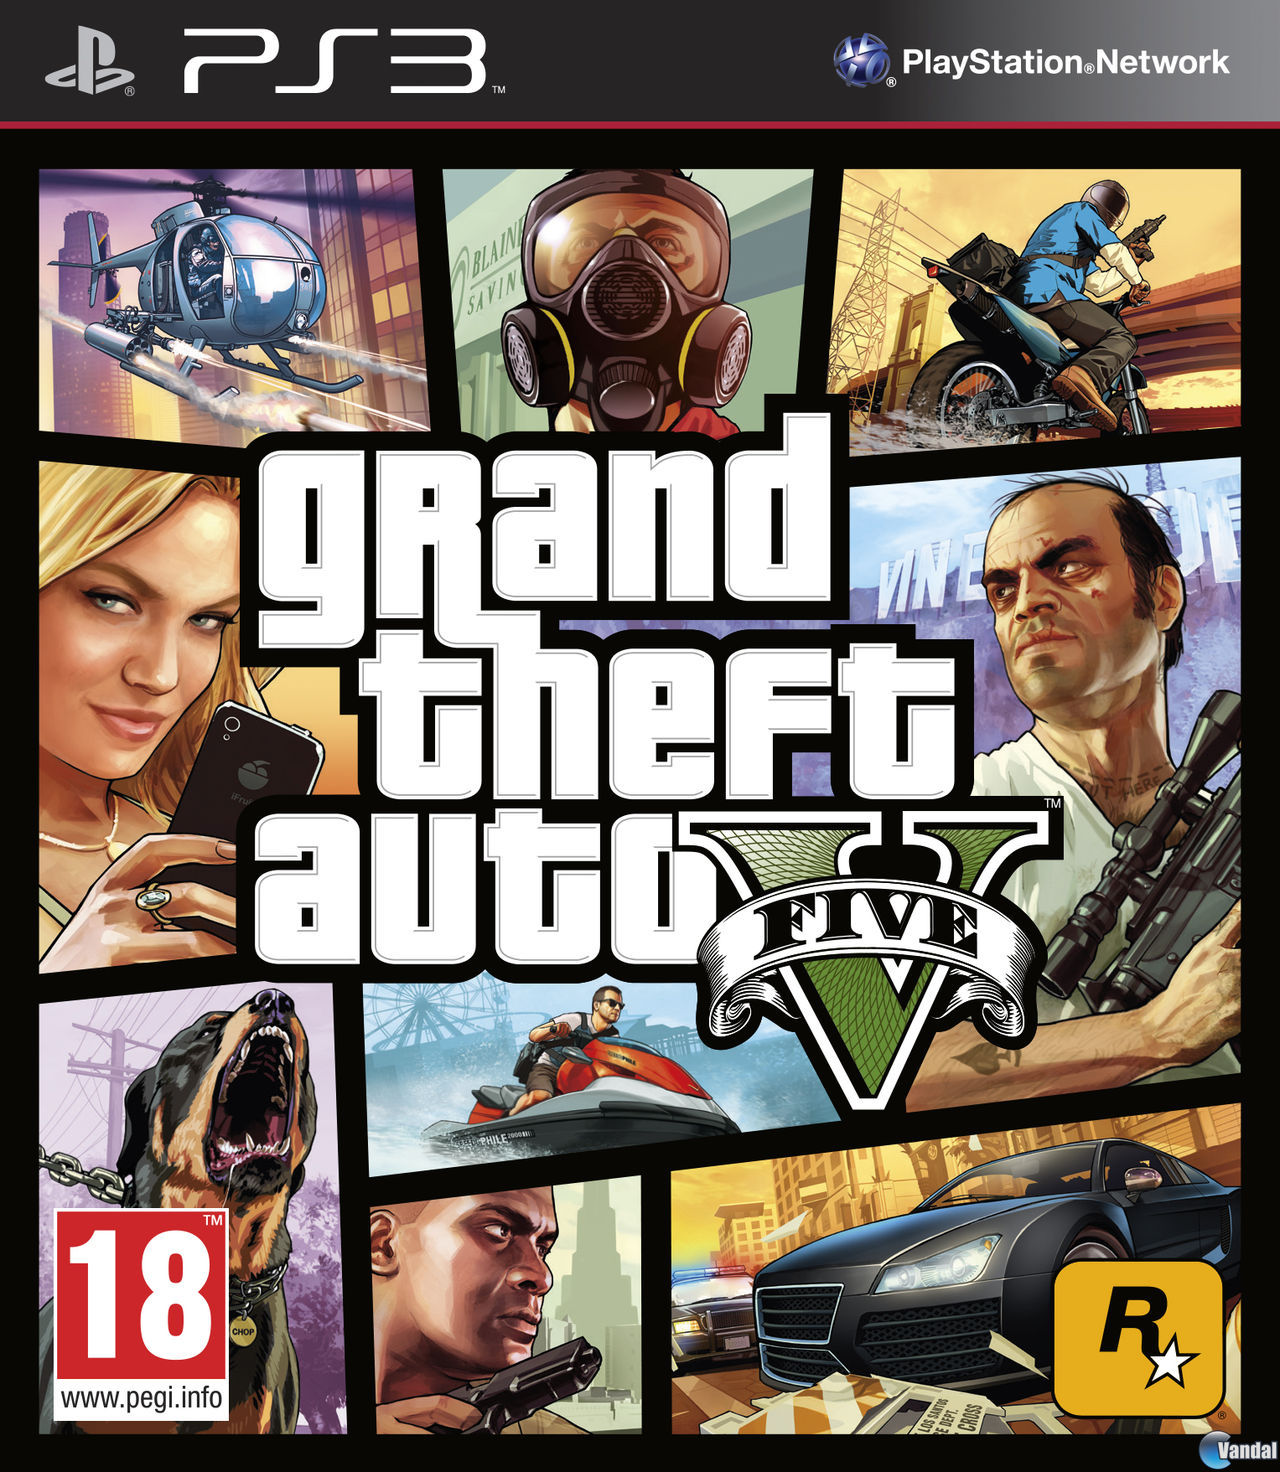 grand theft the conglomeratization of media This steady trend created a sense of inevitability about media conglomeration— until recently now the mood has turned so wildly that the.